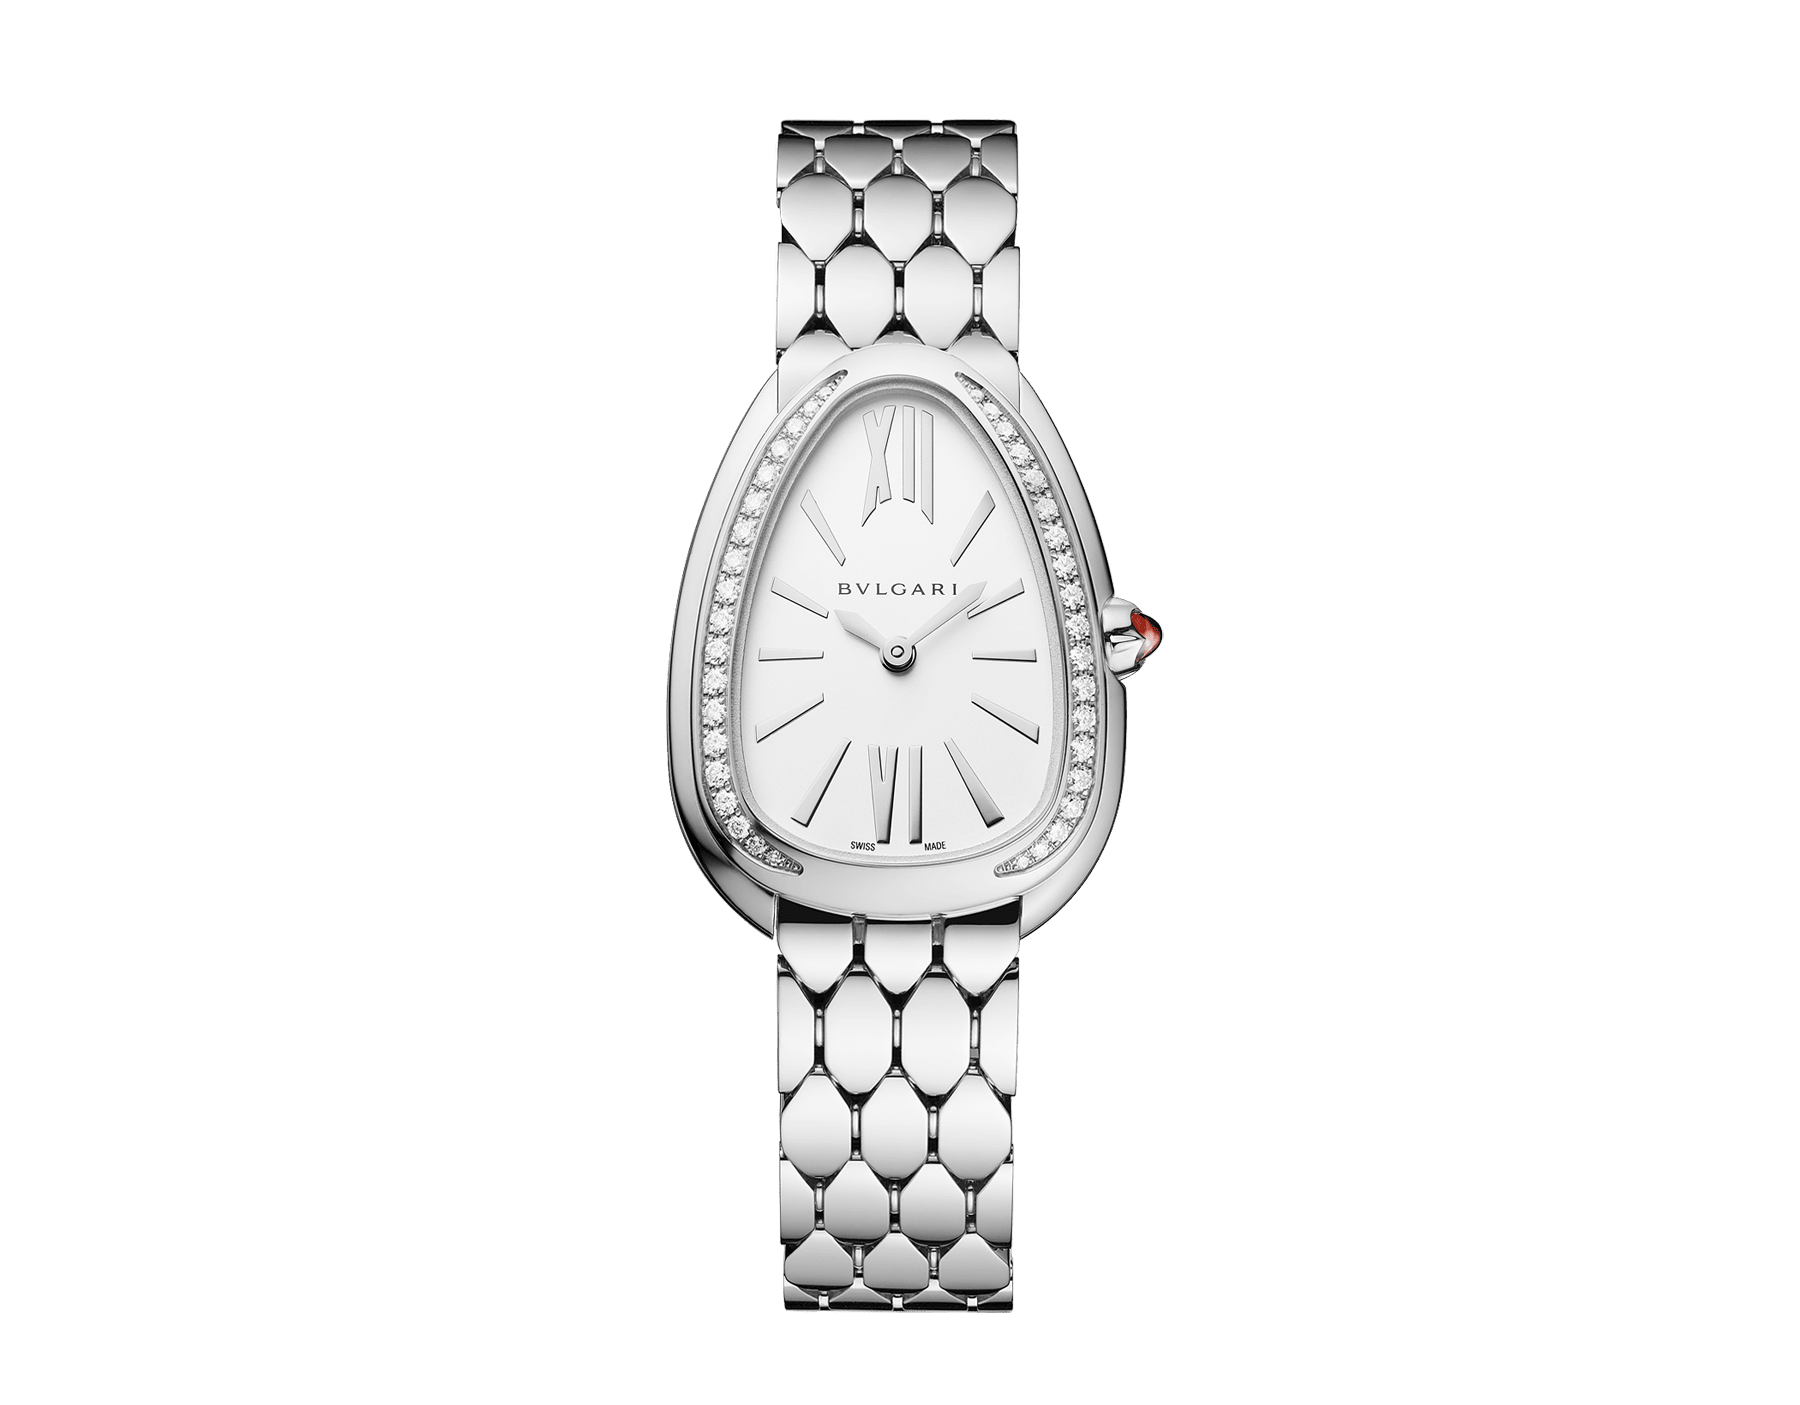 Serpenti Seduttori watch in stainless steel case and bracelet, stainless steel bezel set with diamonds and white silver opaline dial 103361 image 1